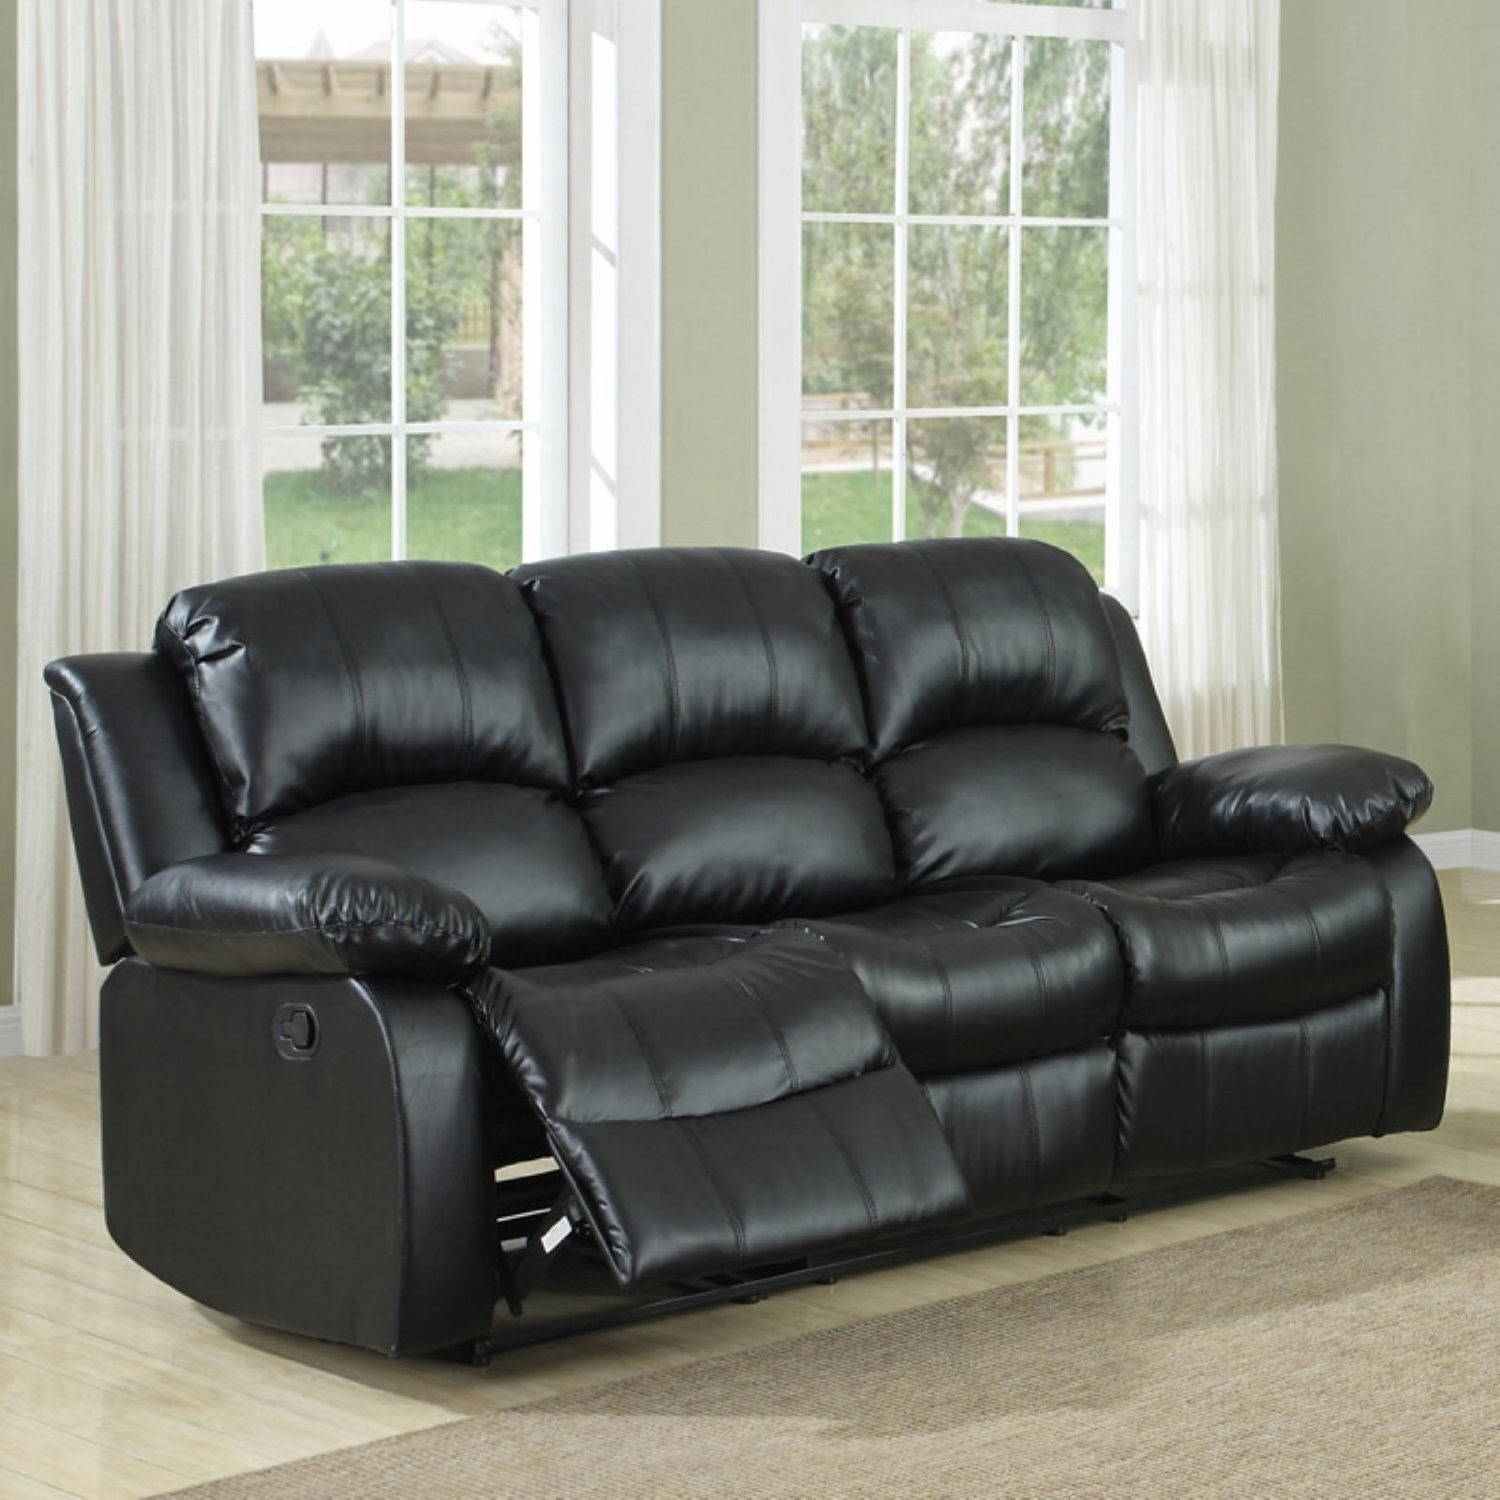 Sofa : Alluring Small Sectional Sofa With Recliner Apk 27801 2S 10X8 regarding 10X8 Sectional Sofas (Image 5 of 10)